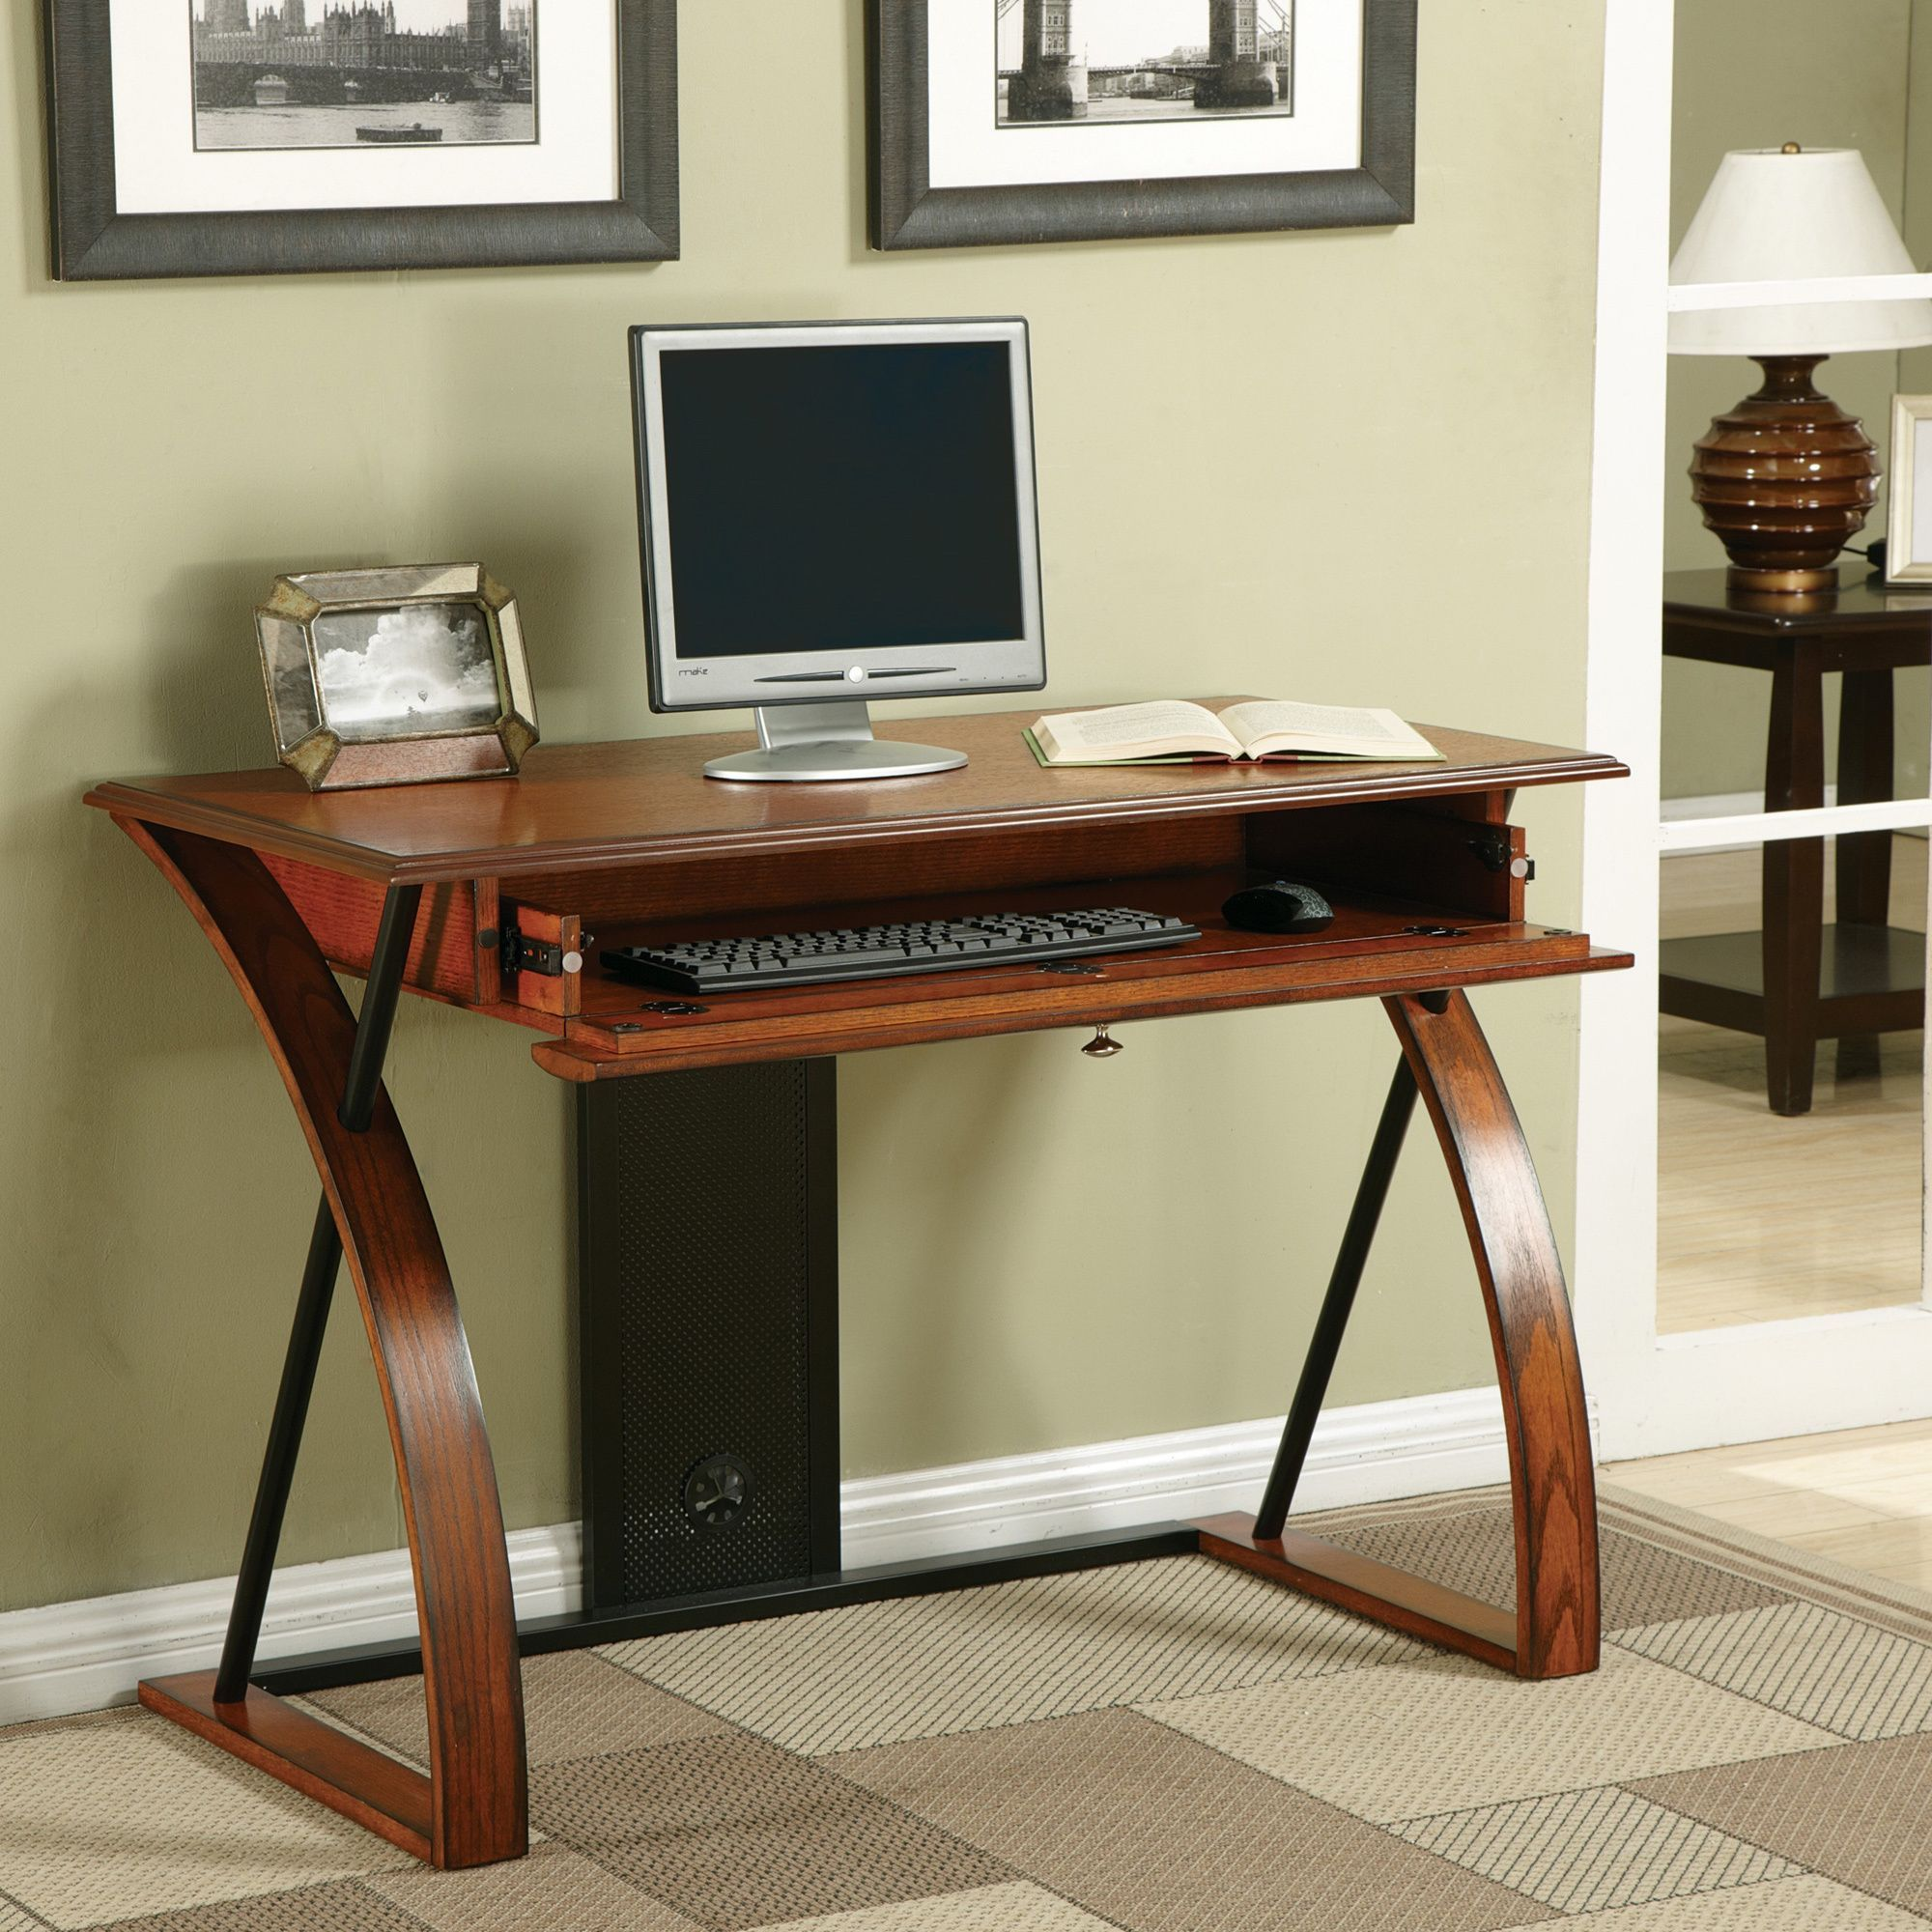 Overstock Com Online Shopping Bedding Furniture Electronics Jewelry Clothing More In 2021 Contemporary Computer Desk Desk With Keyboard Tray Oak Wood Desk